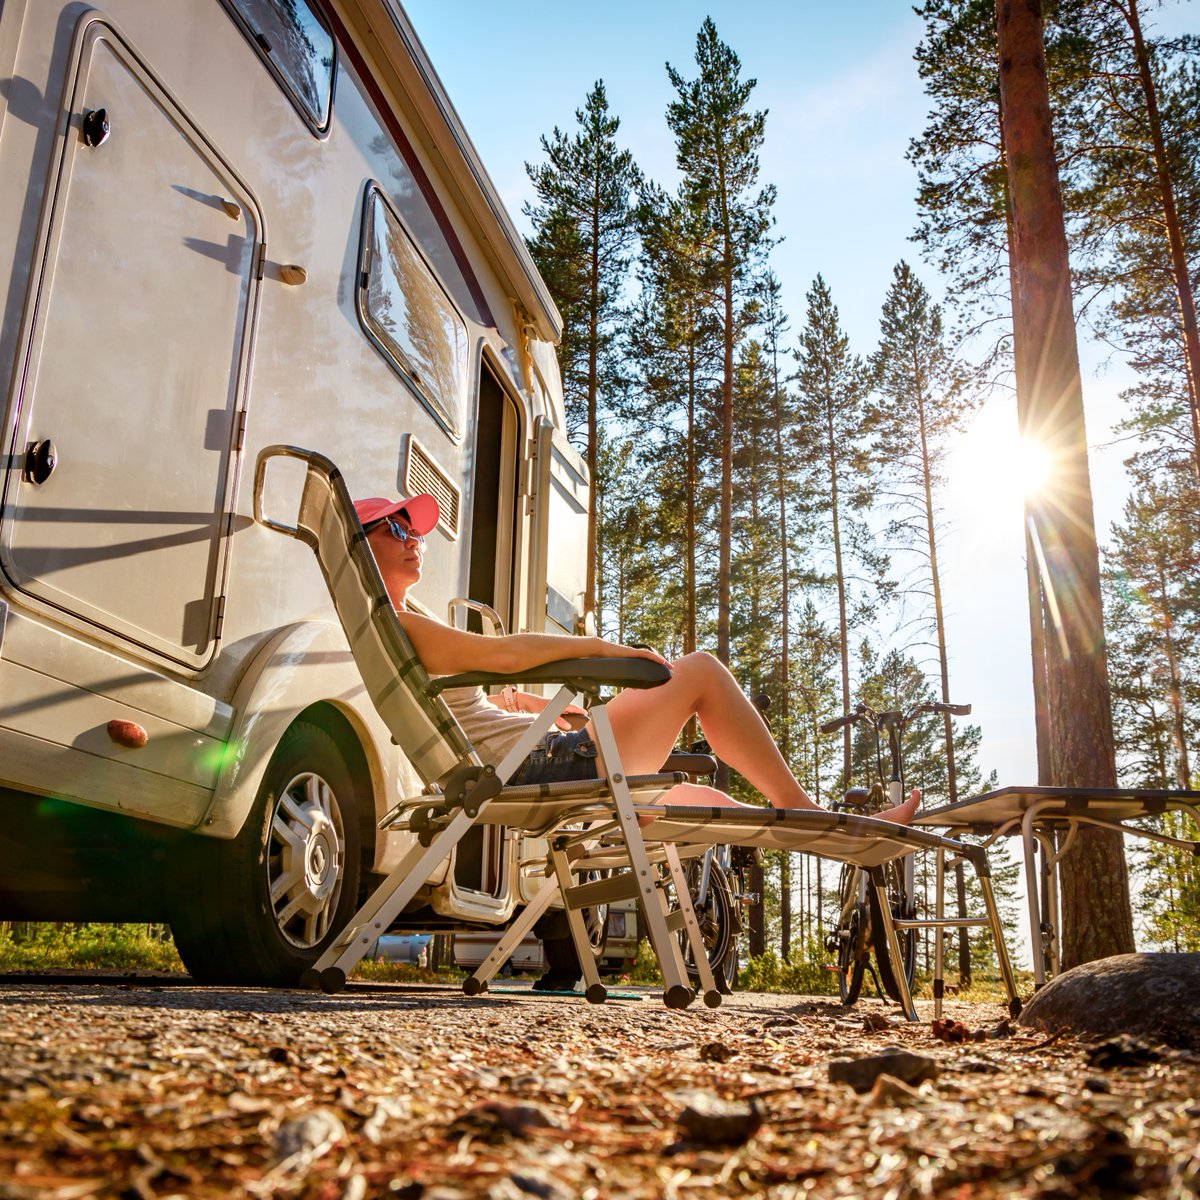 Are you going RVing this summer? Our team's favourite destination is Algonquin Provincial Park. Tell us where you're headed!  Have a safe journey with these important RV driving tips: https://t.co/nWXCagFfli https://t.co/0FGObhefvl